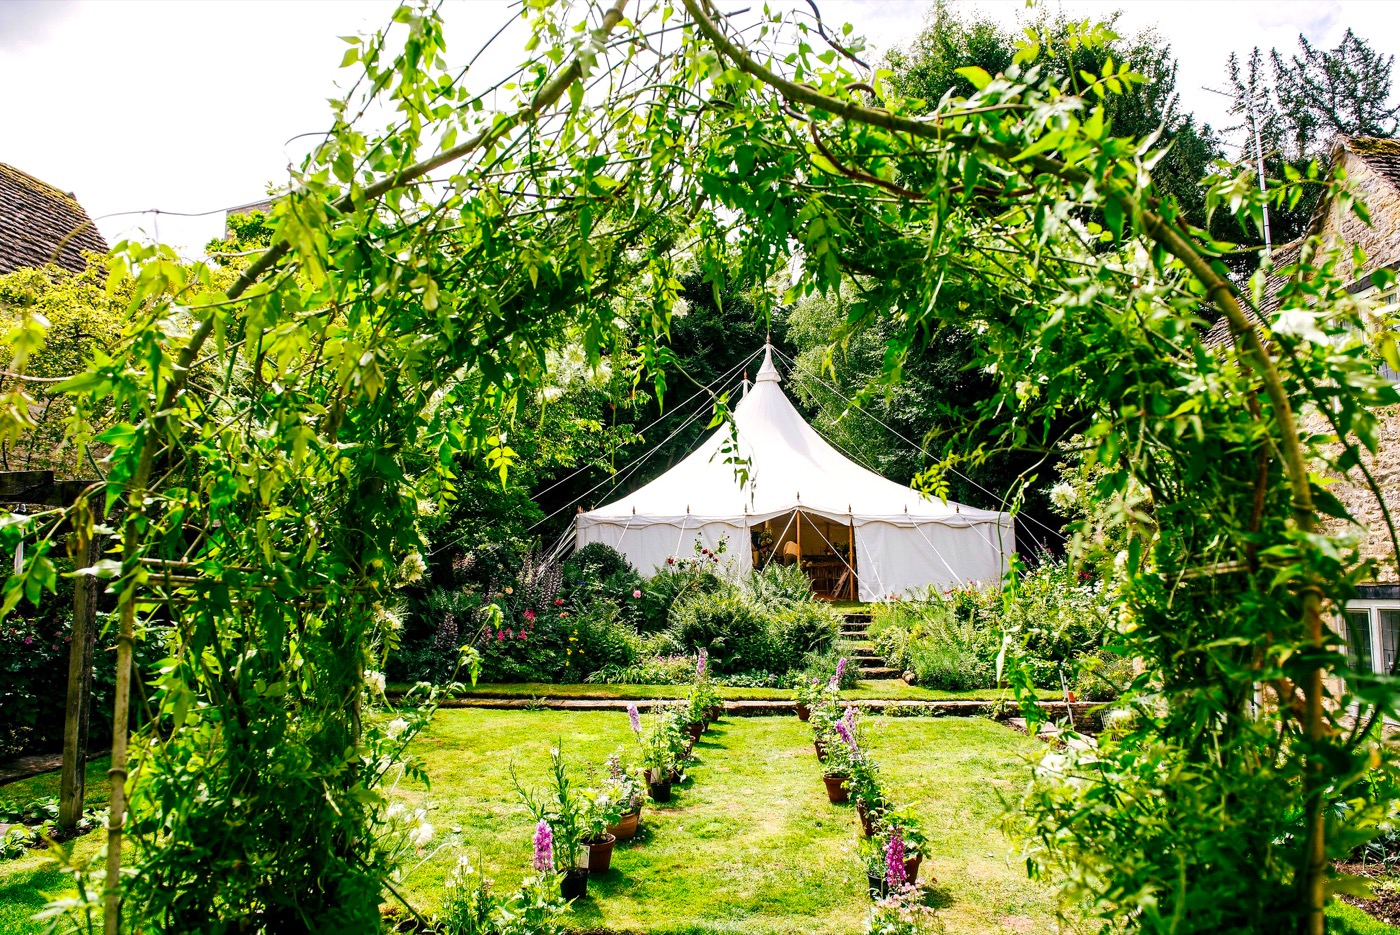 Bespoke-Tents-and-events-marquee-hire-London